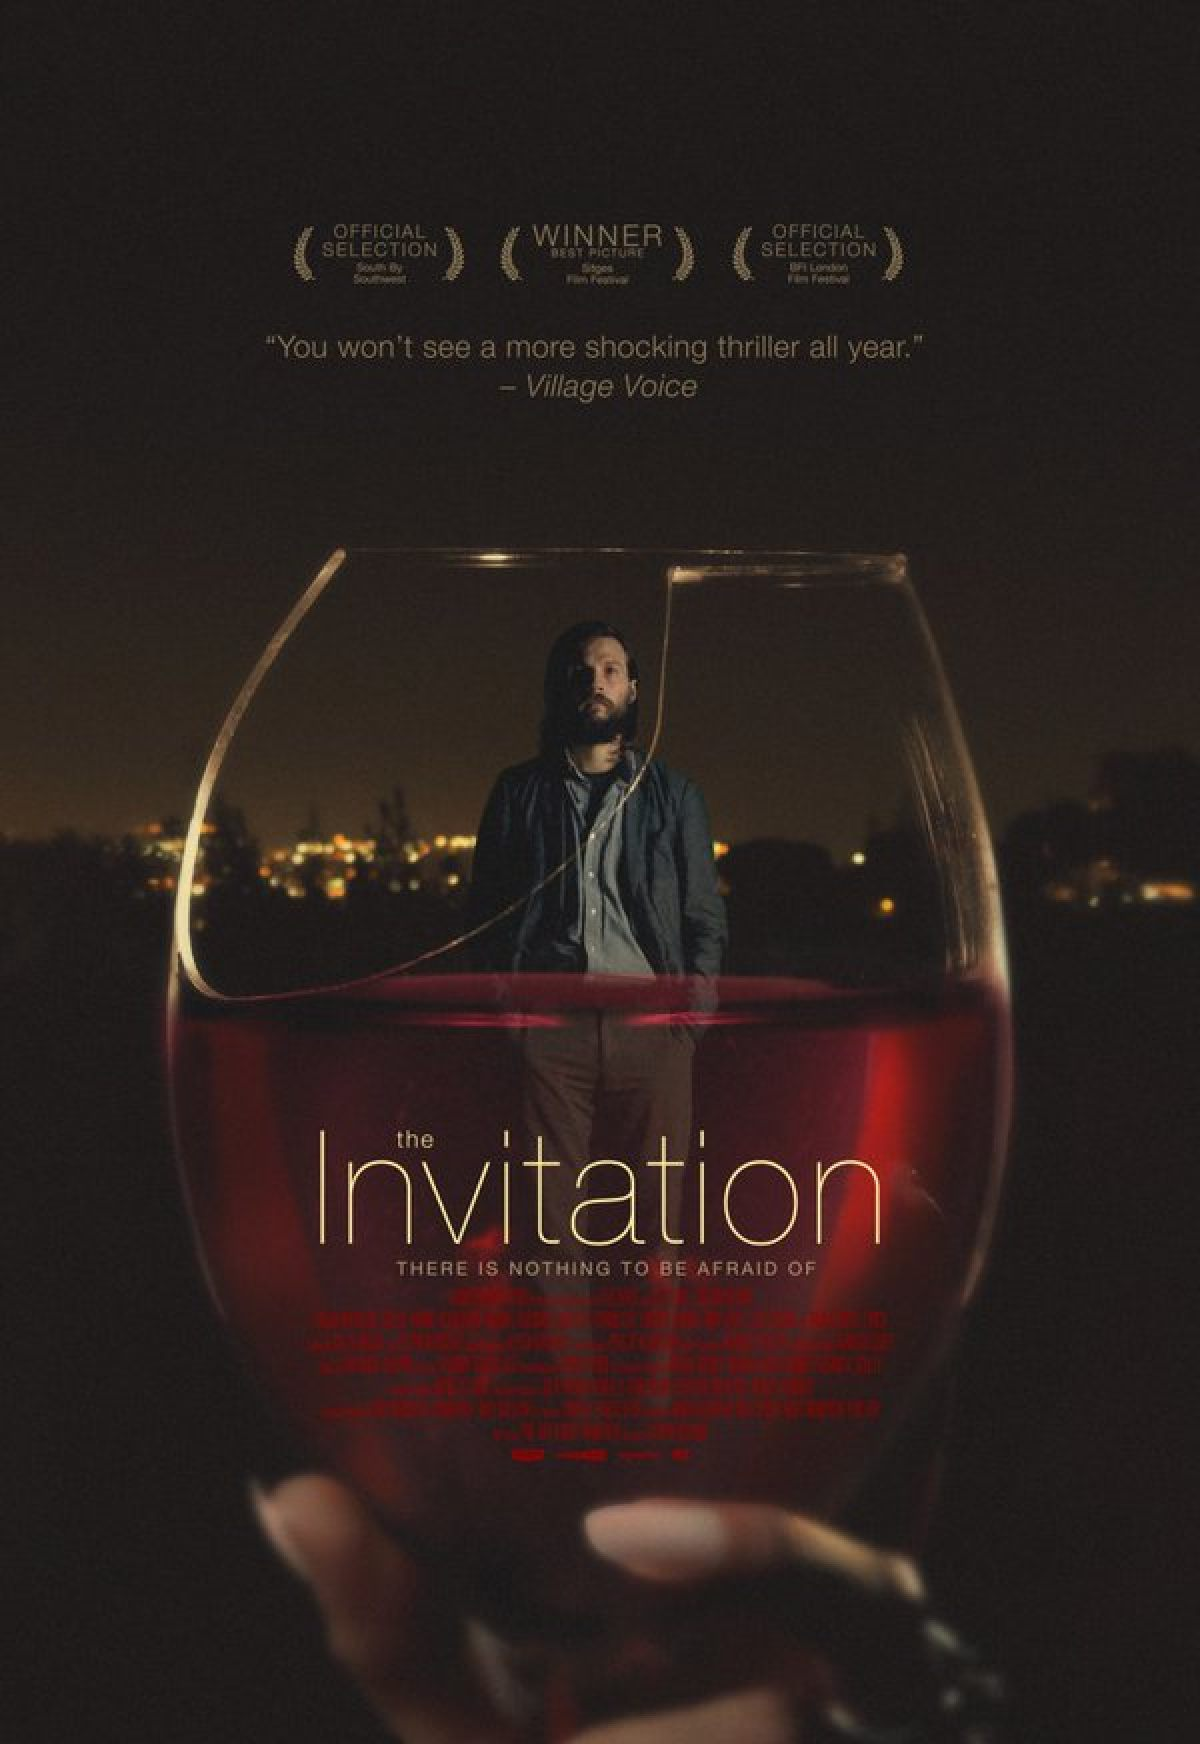 [Image: the-invitation-poster-large_1200_1744_81_s-1.jpg]